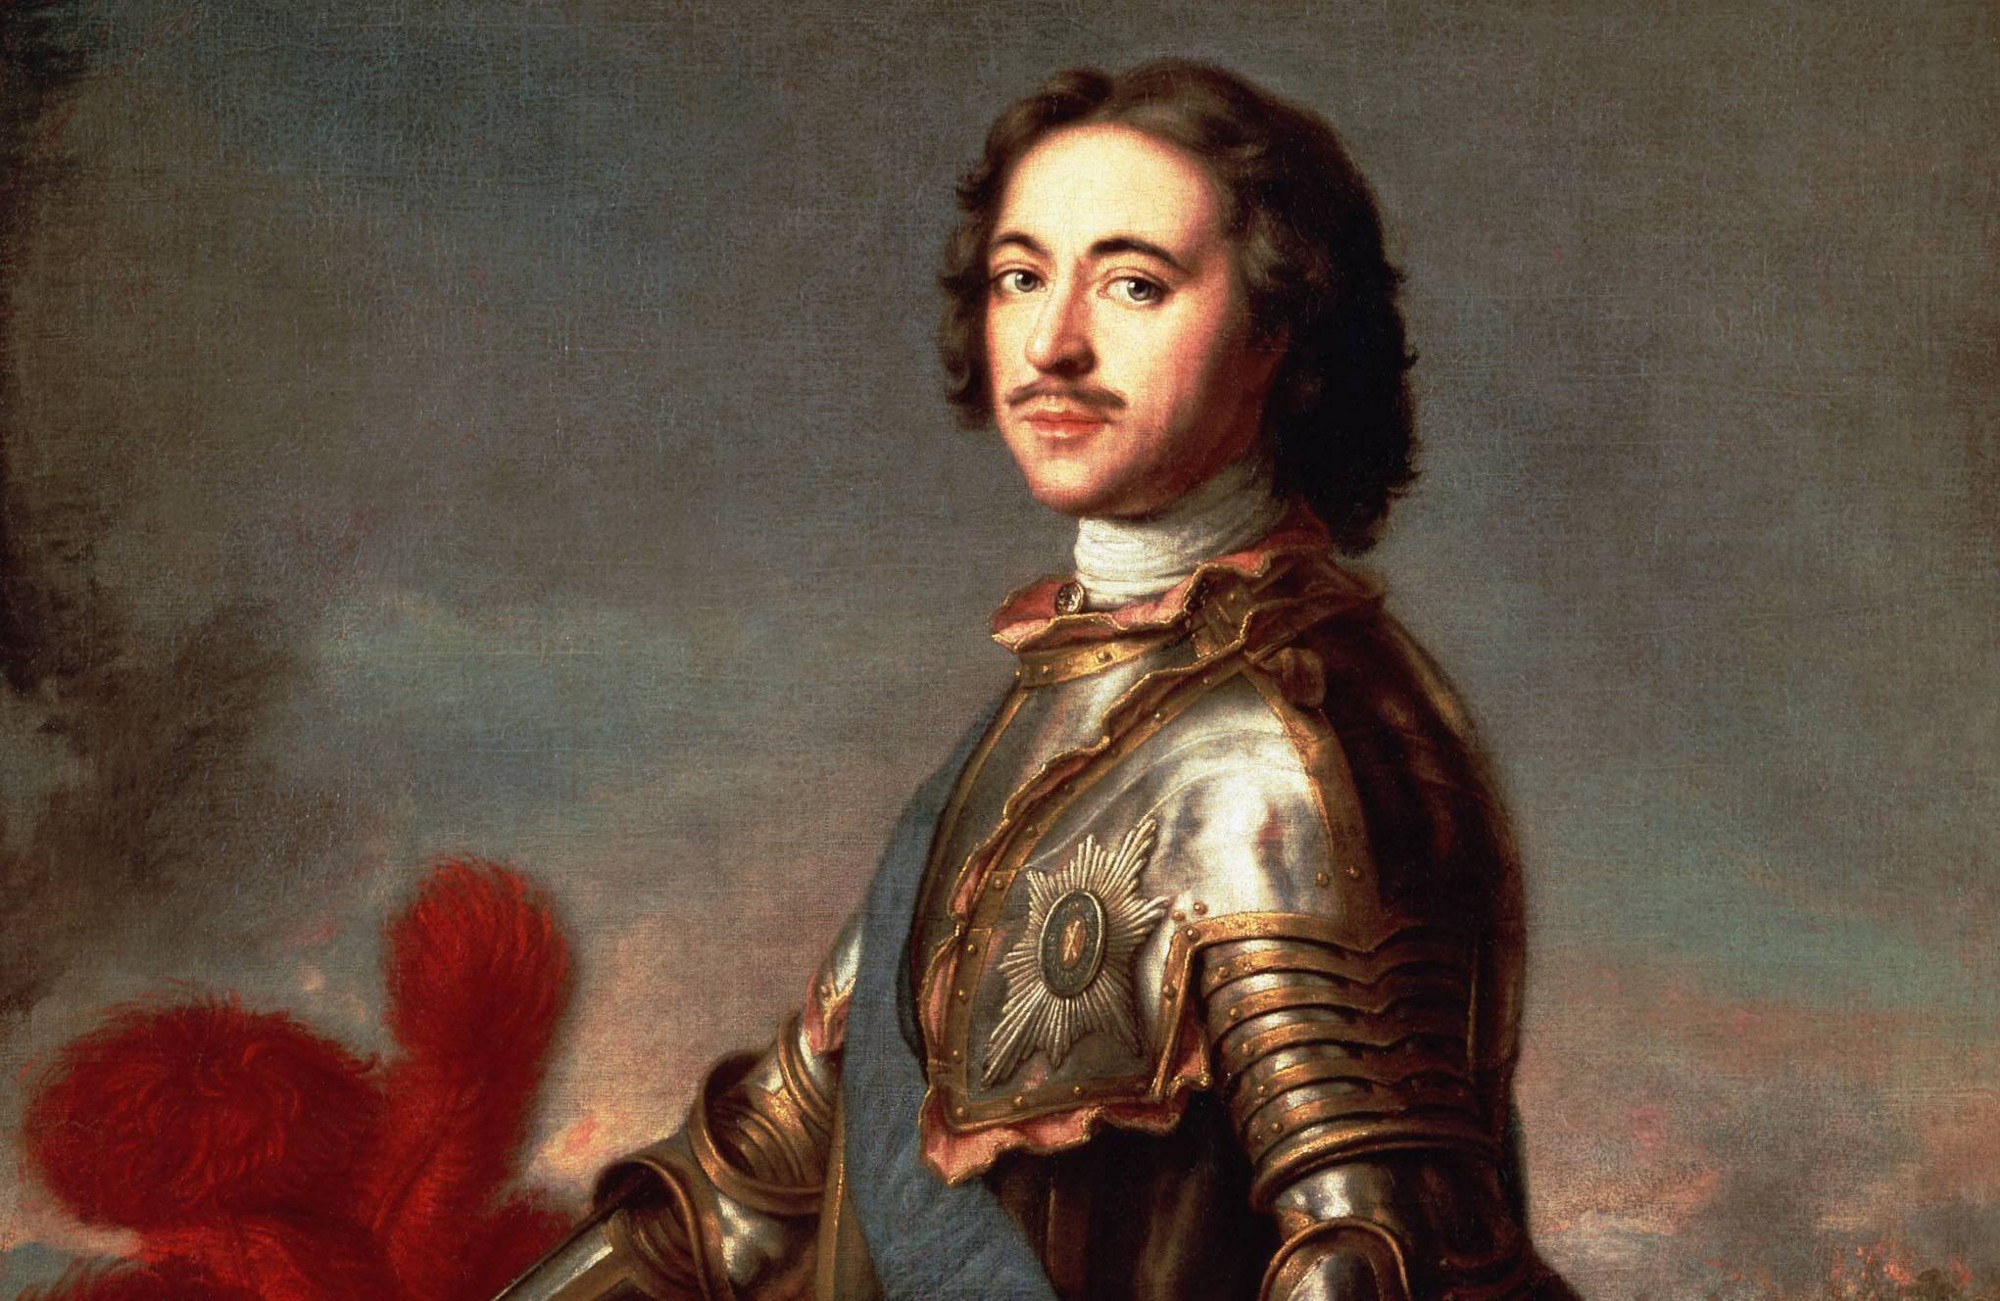 Peter the Great: by Robert K Massie